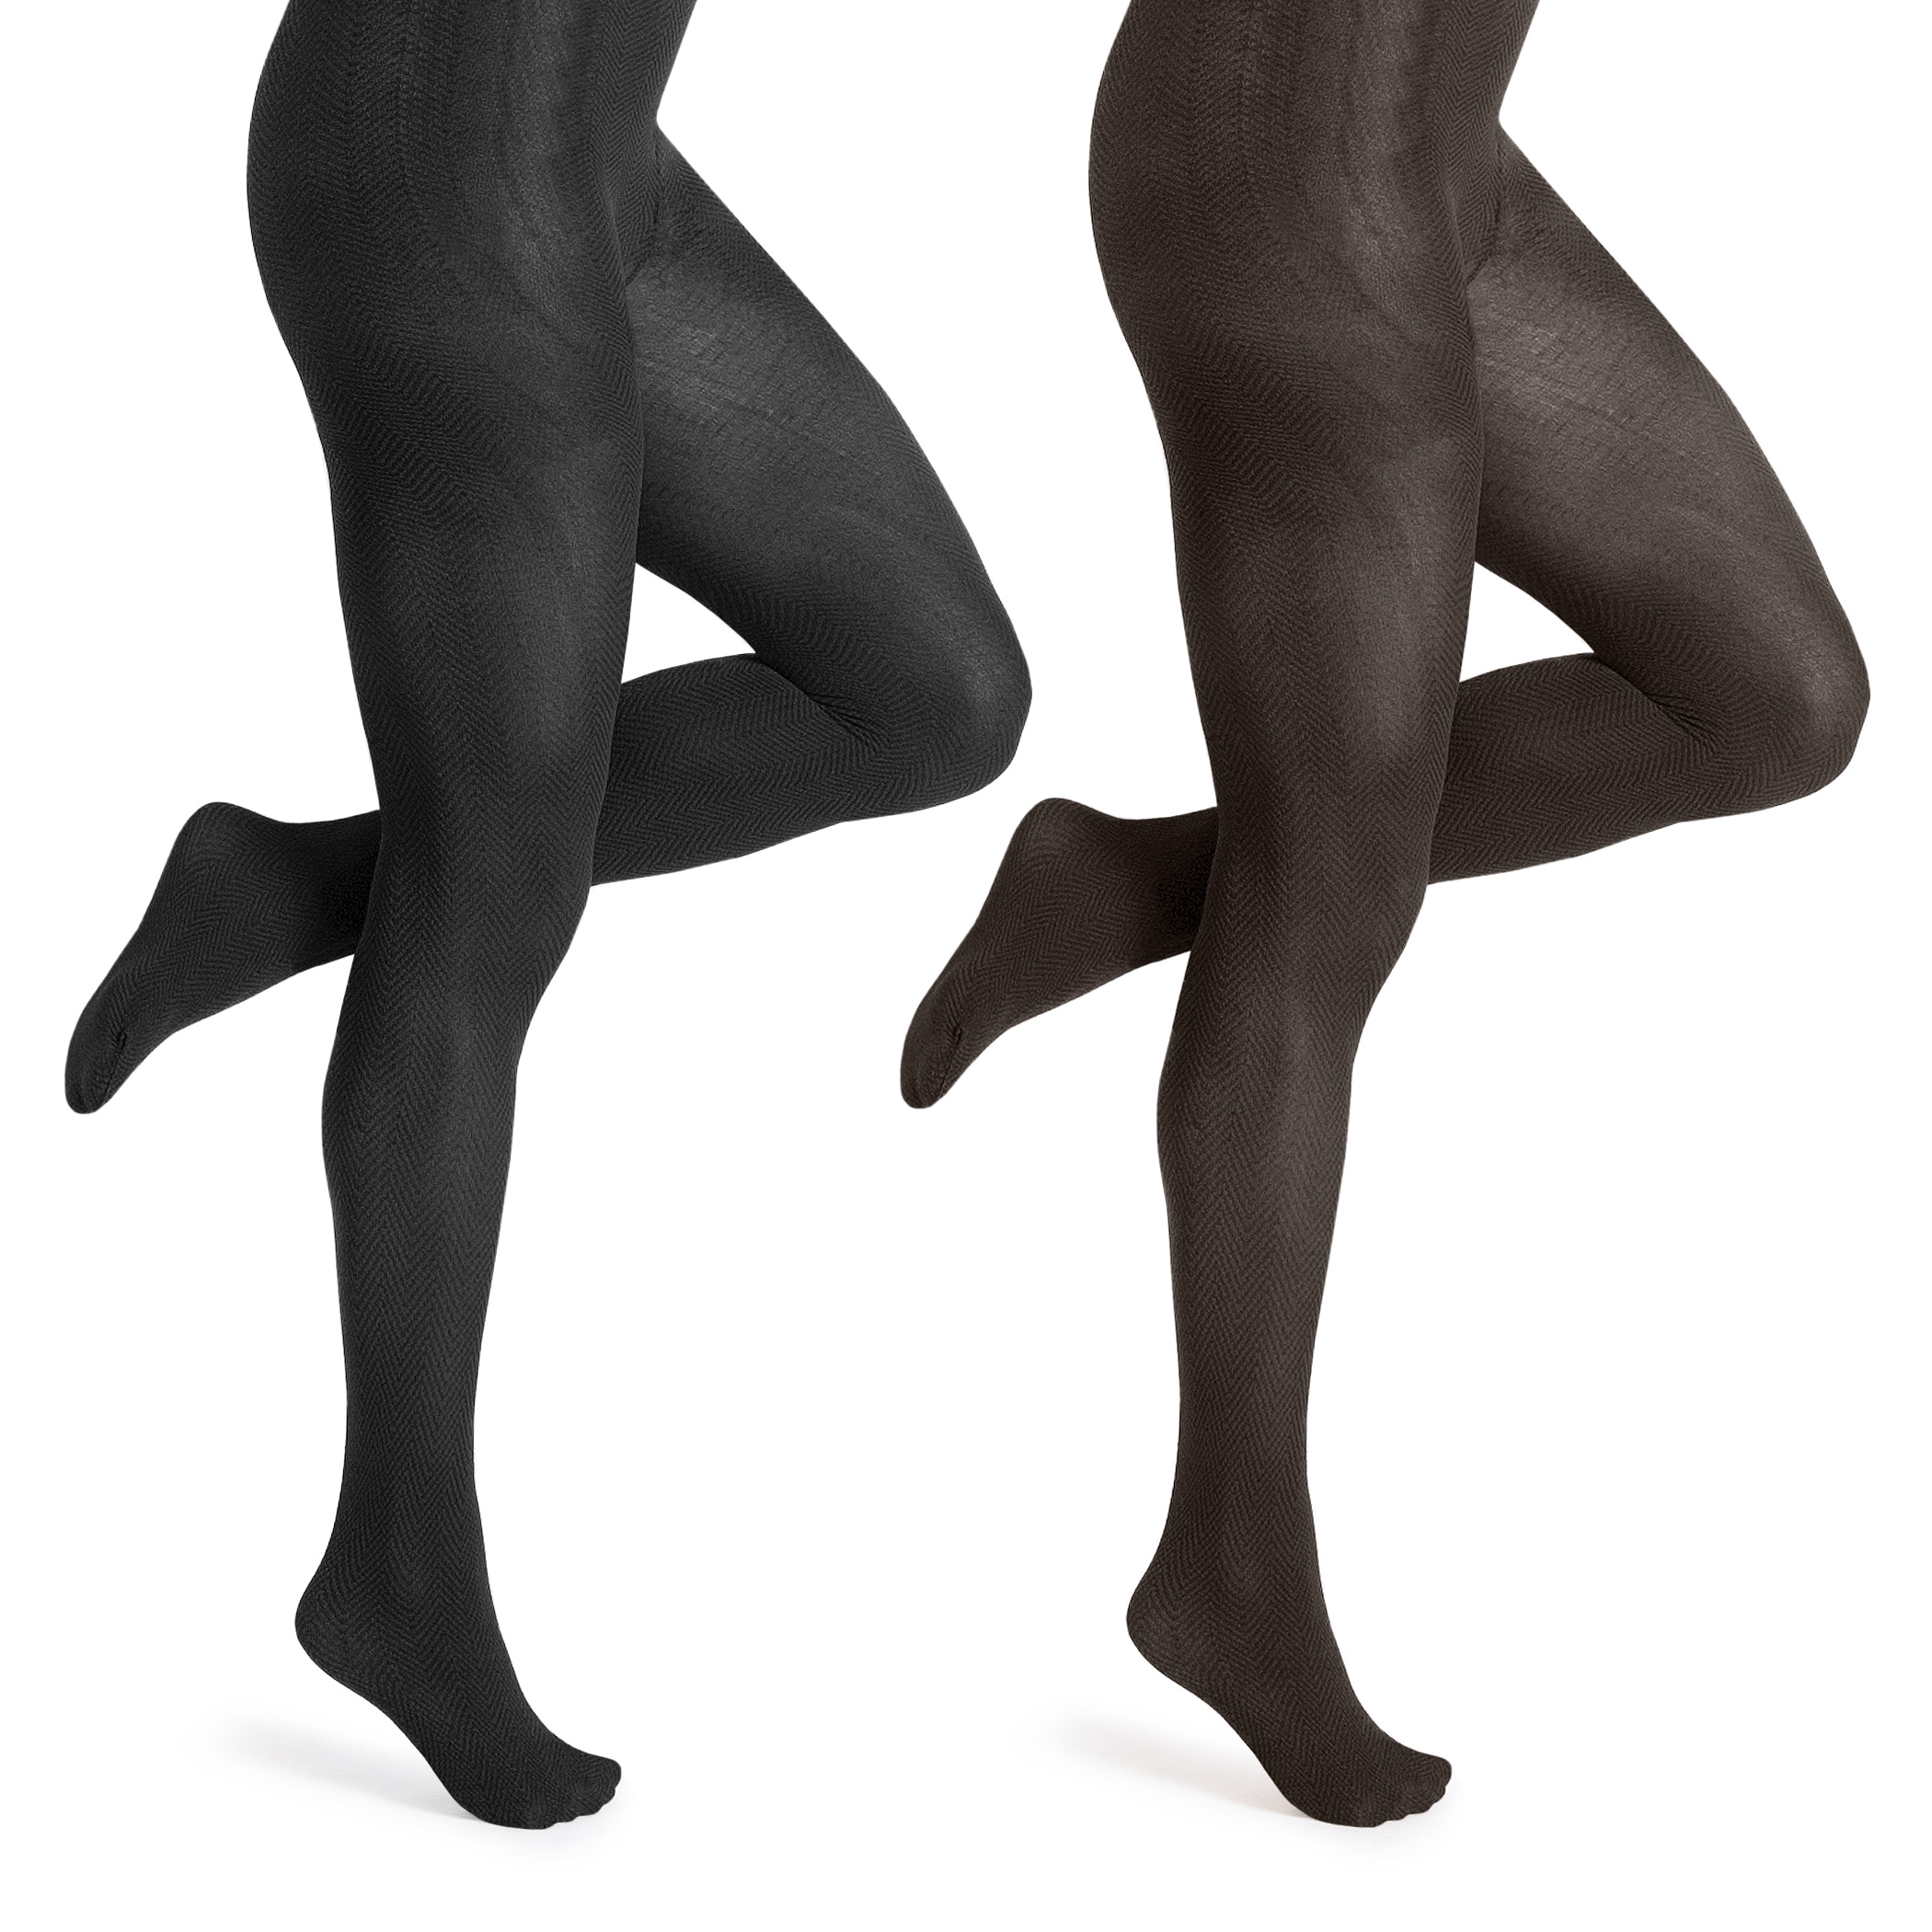 b5c75a33c410d6 Shop Muk Luks Women's Microfiber Herringbone Tights (2 pairs) - Free  Shipping On Orders Over $45 - Overstock - 8431378